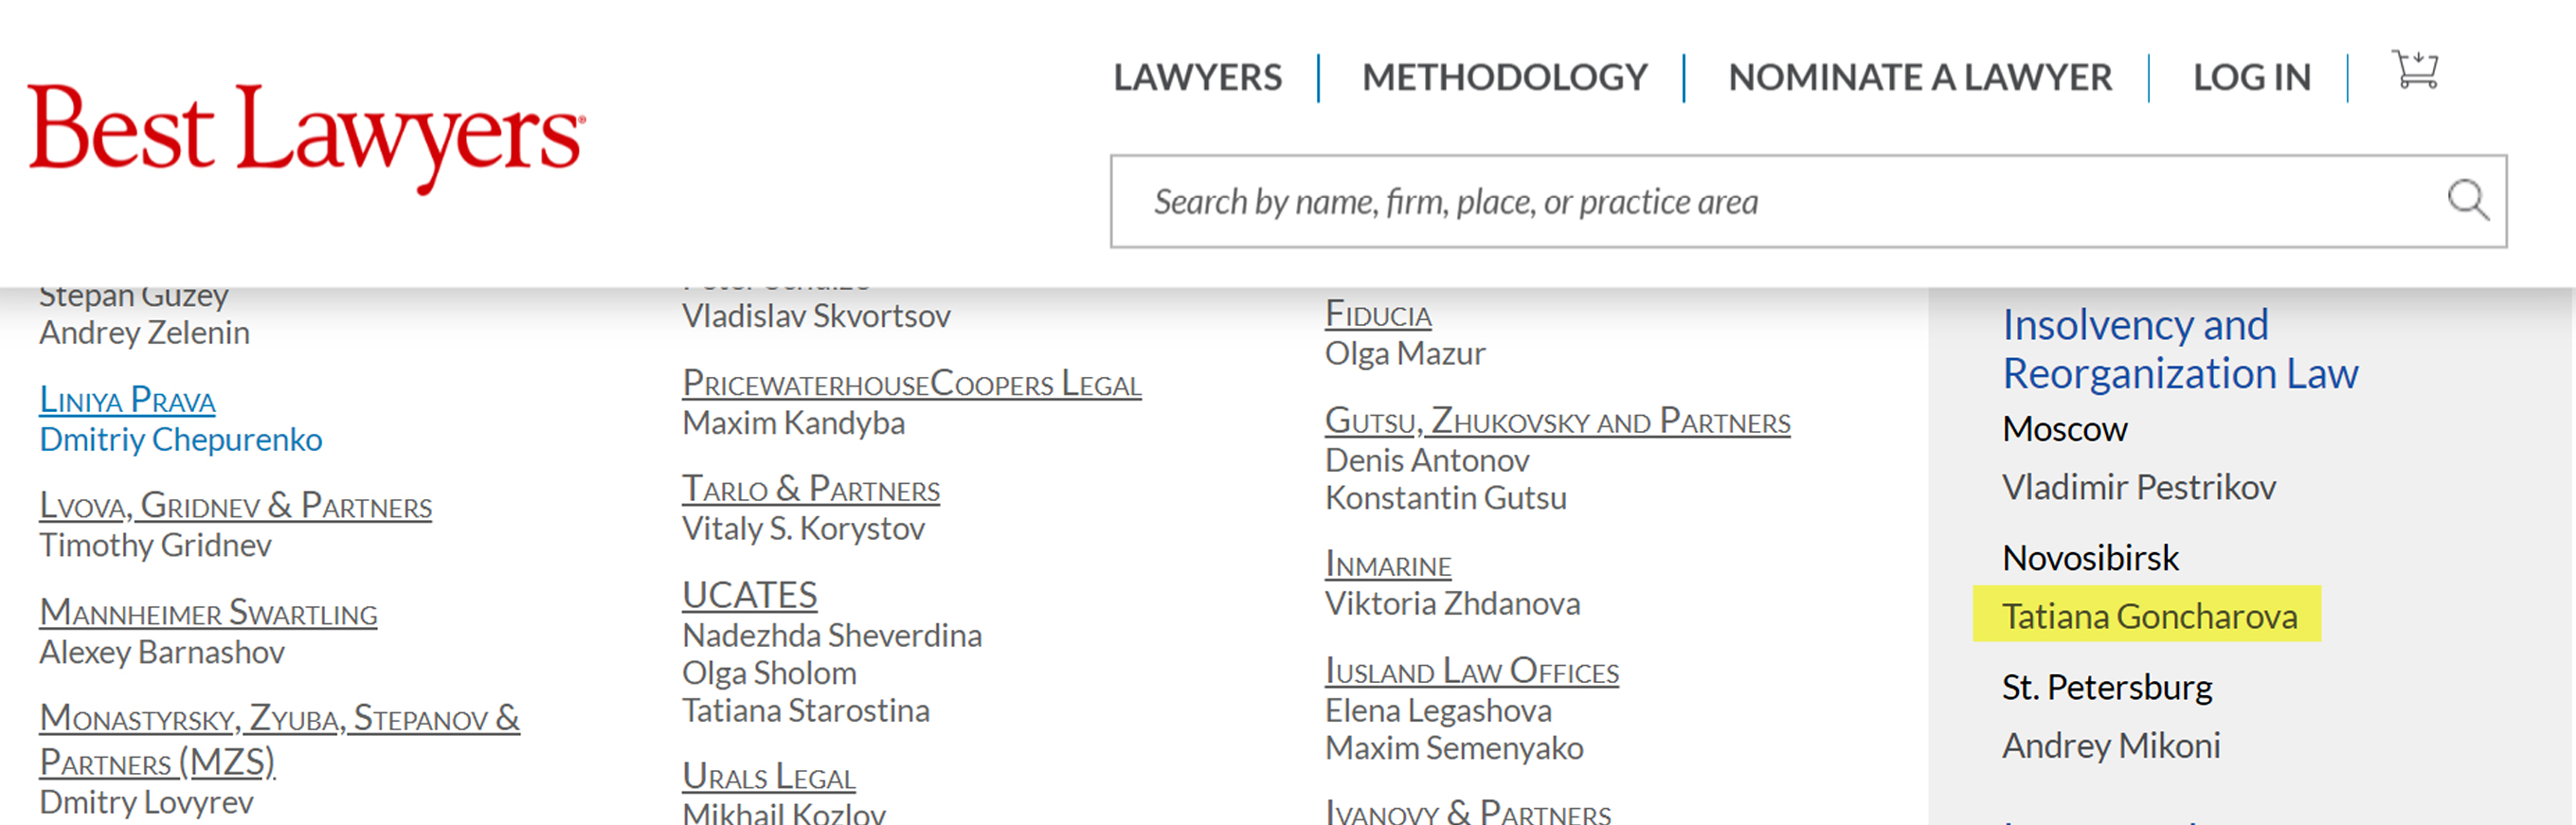 bestlawyers i and r law